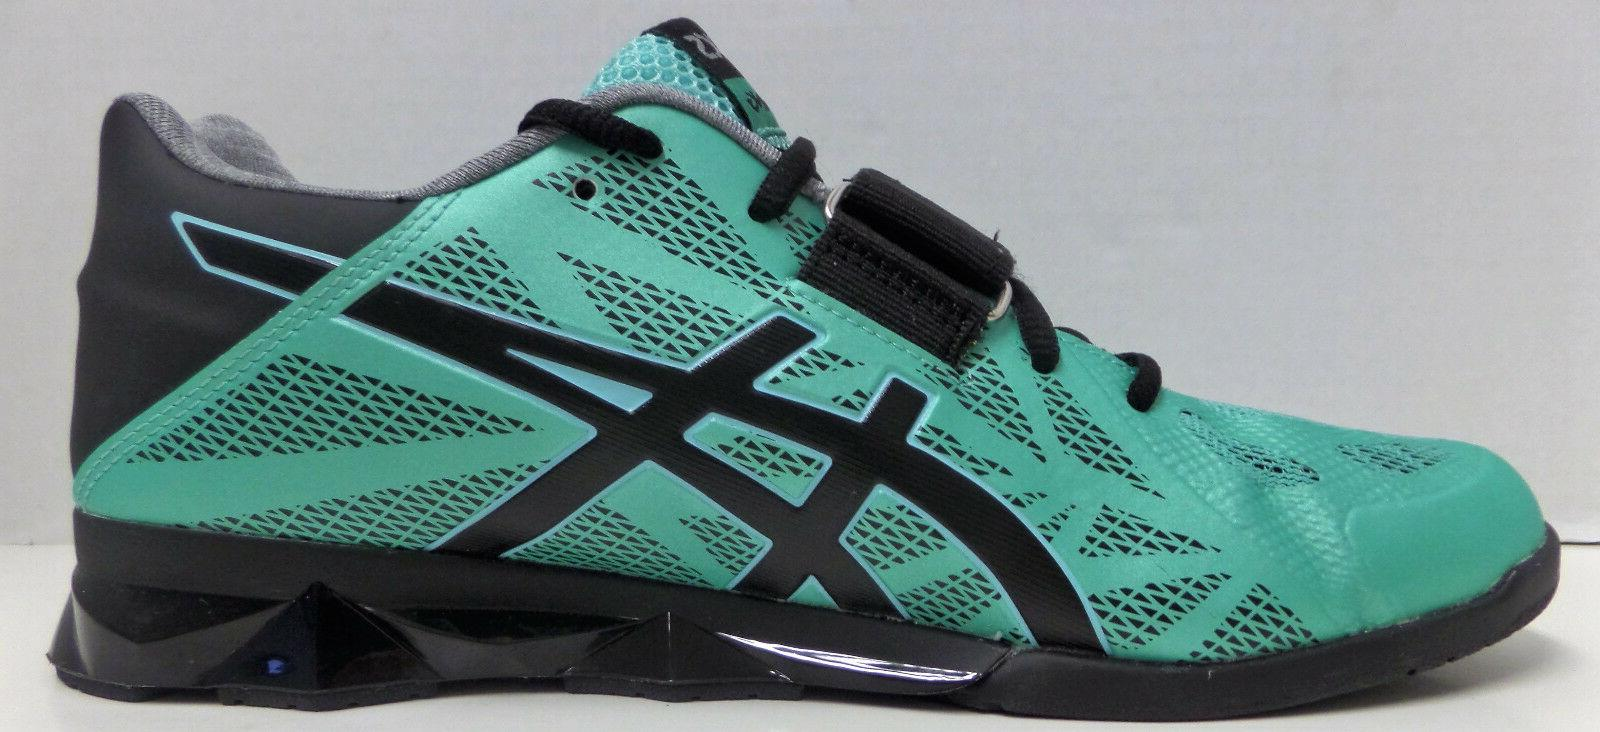 Asics Lift Weight Lifting Shoes Teal/Black/Silver